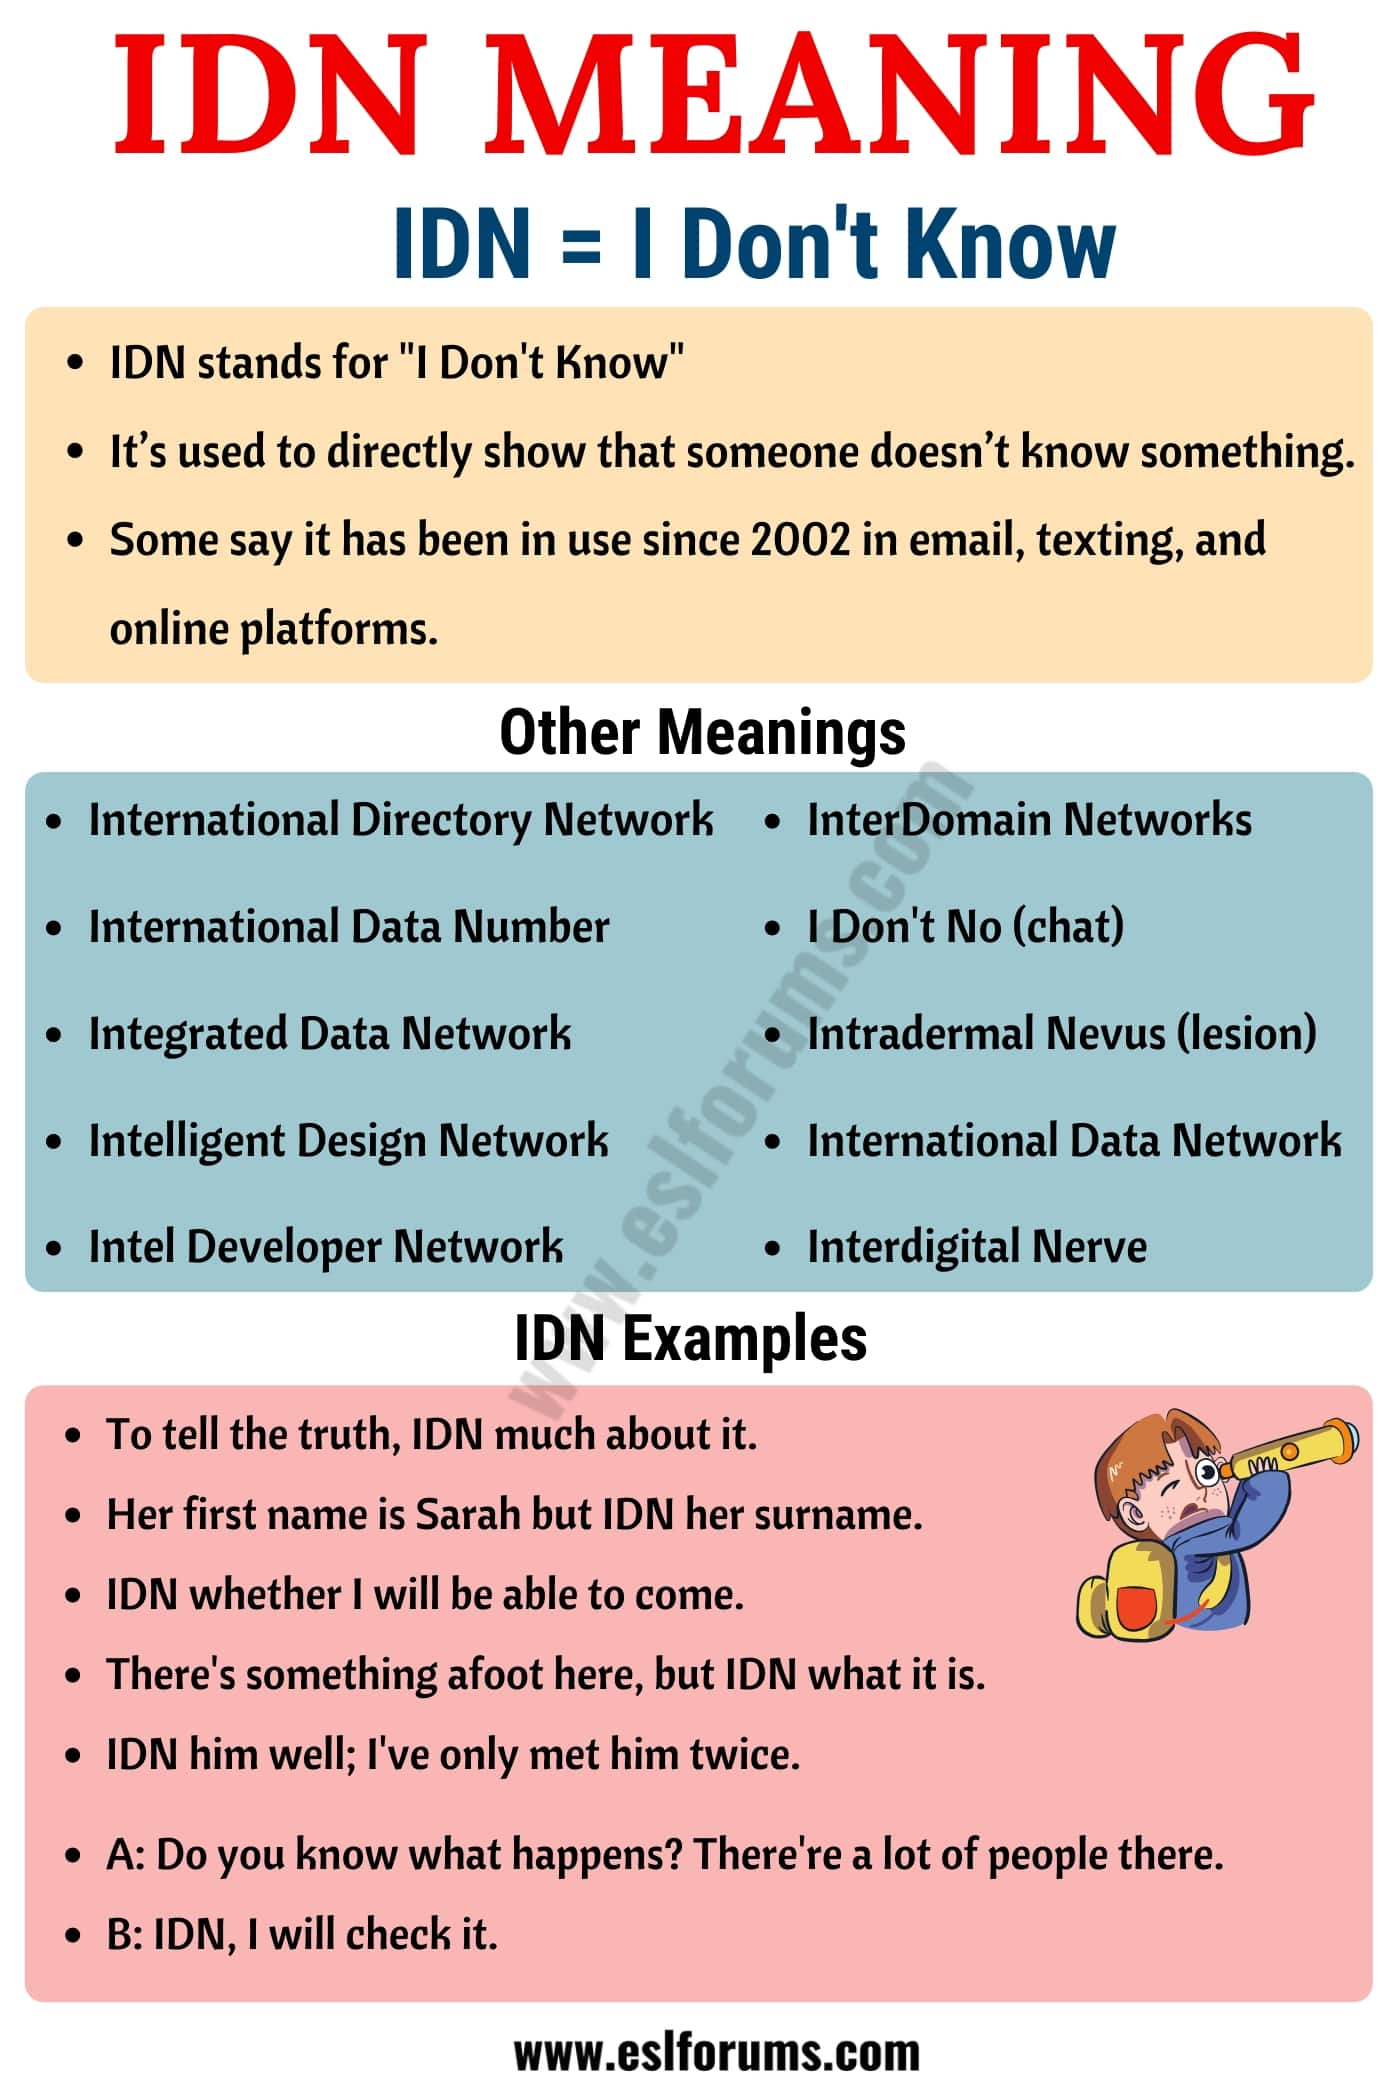 IDN Meaning: What Does IDN Stand for? (with Useful Examples)